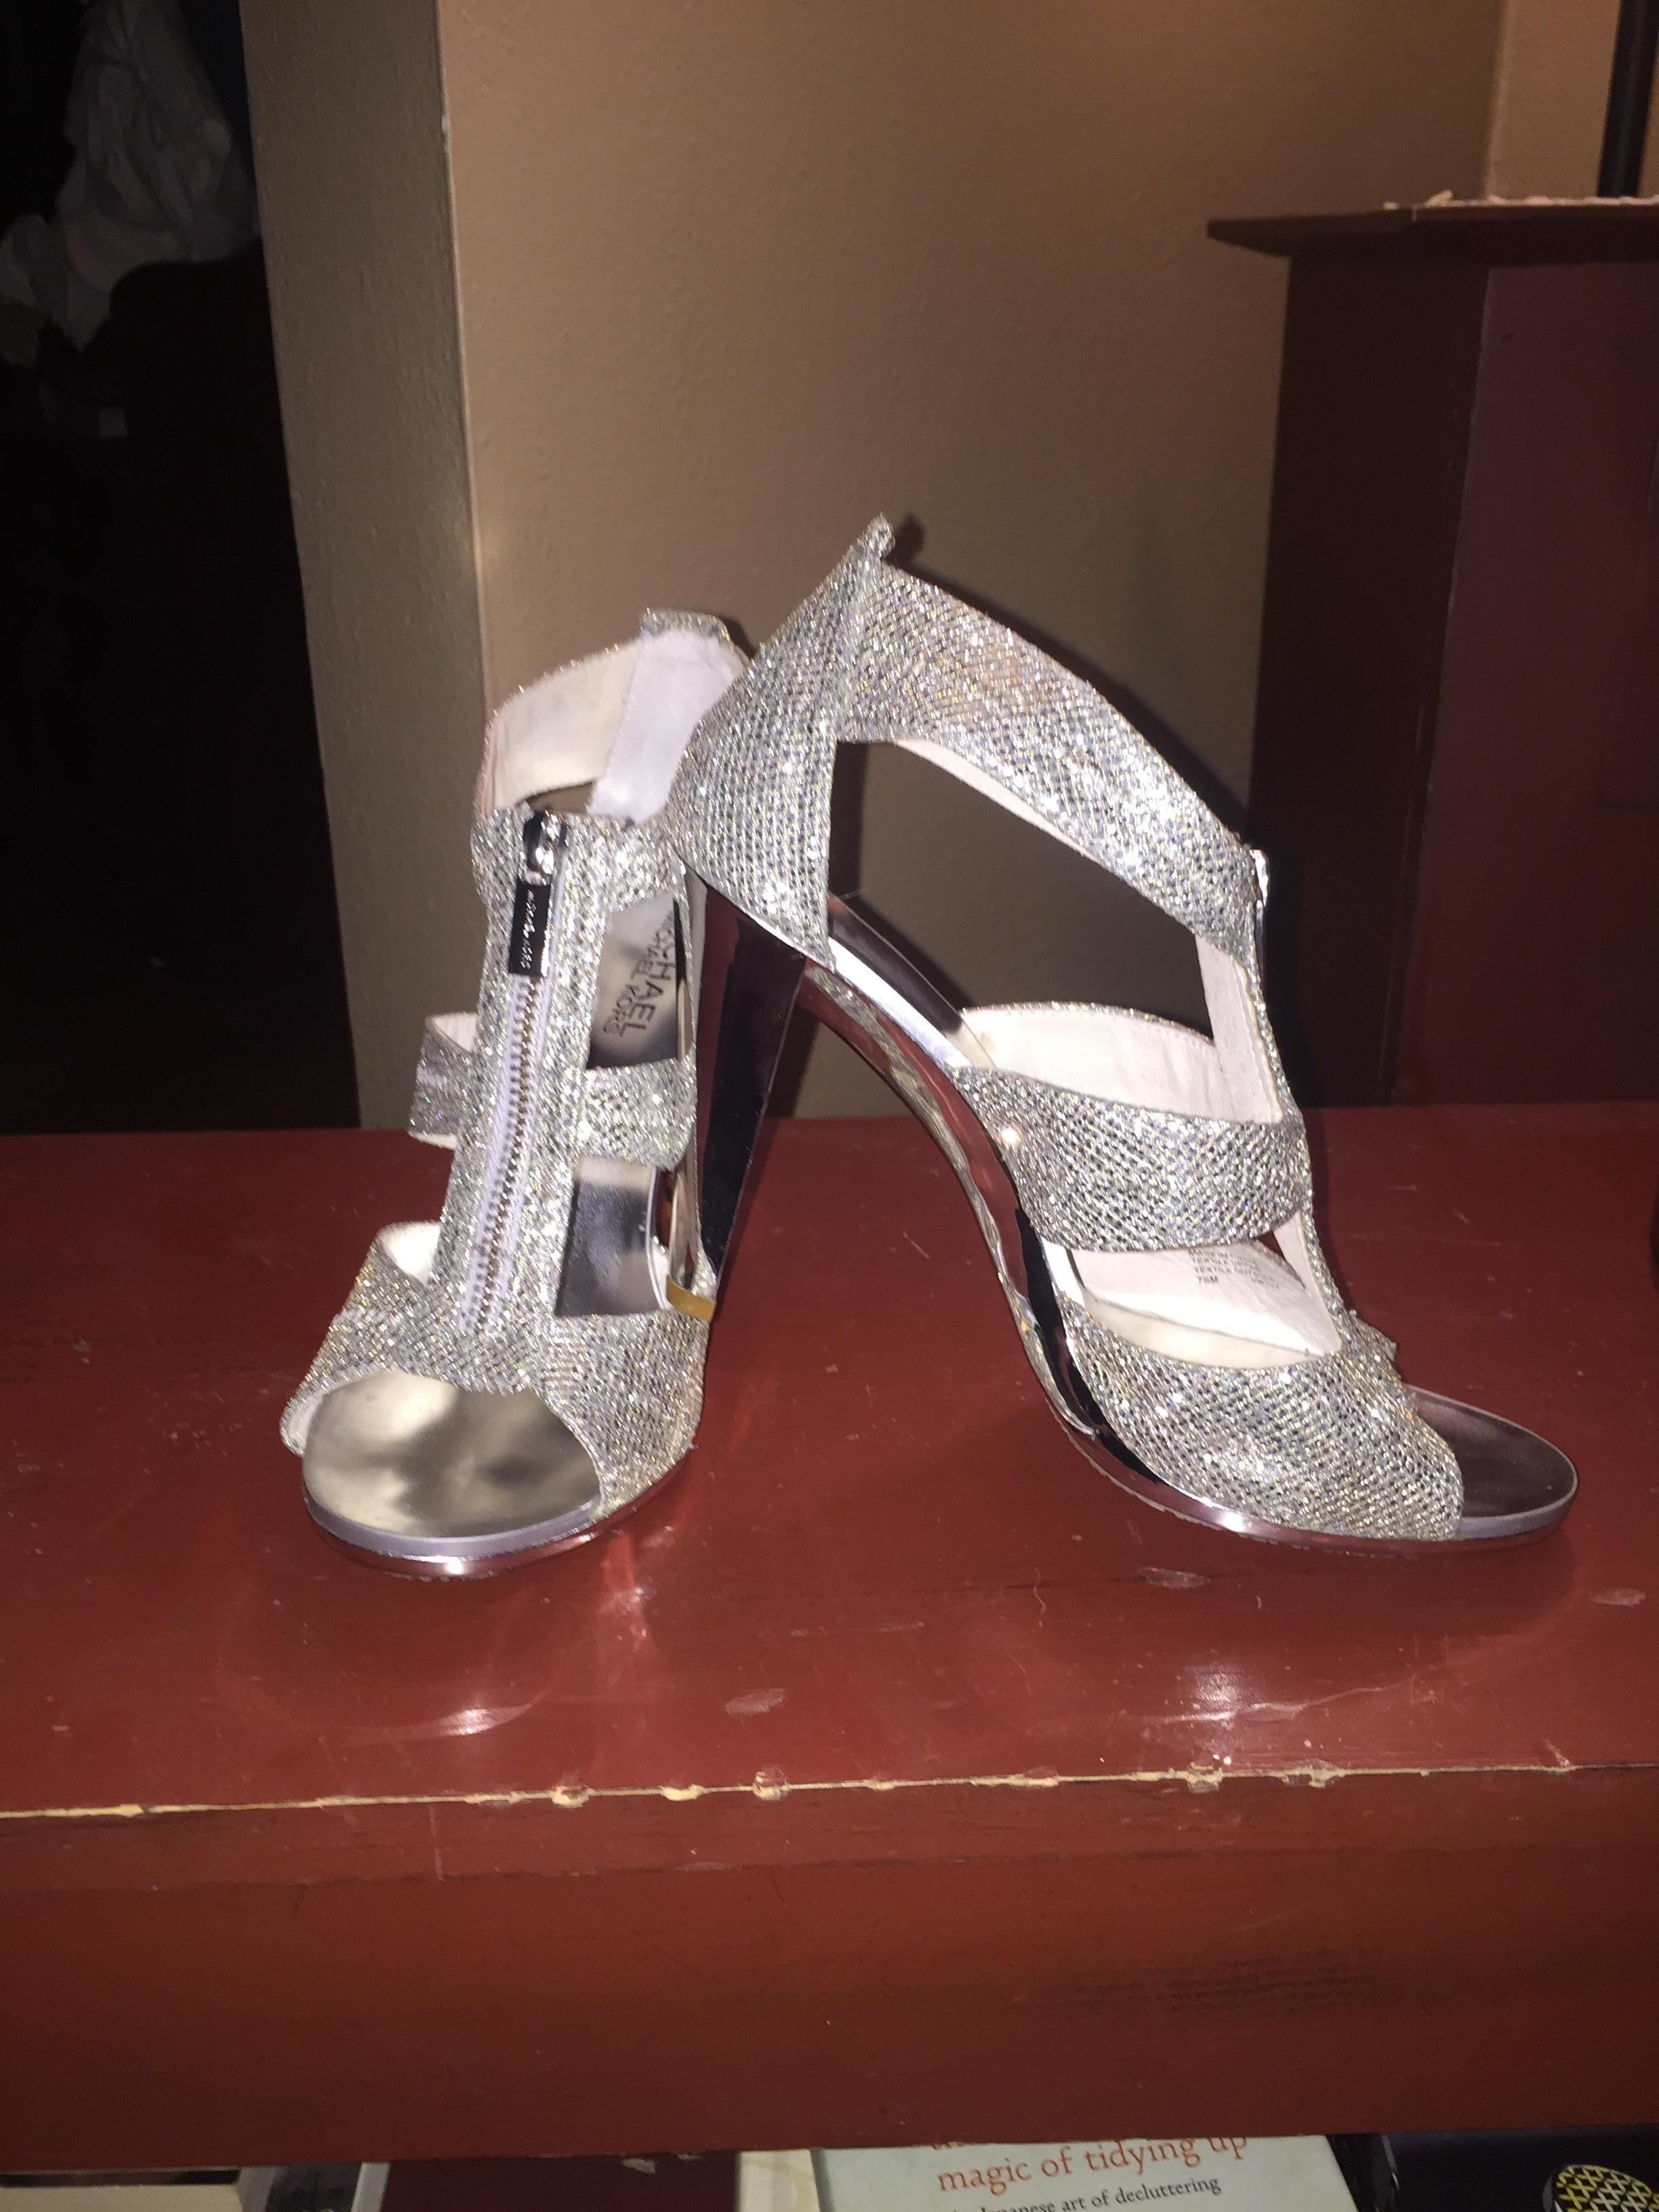 Great Michael Kors Silver Zip Berkley Pumps Size US 7.5 Regular (M, B)